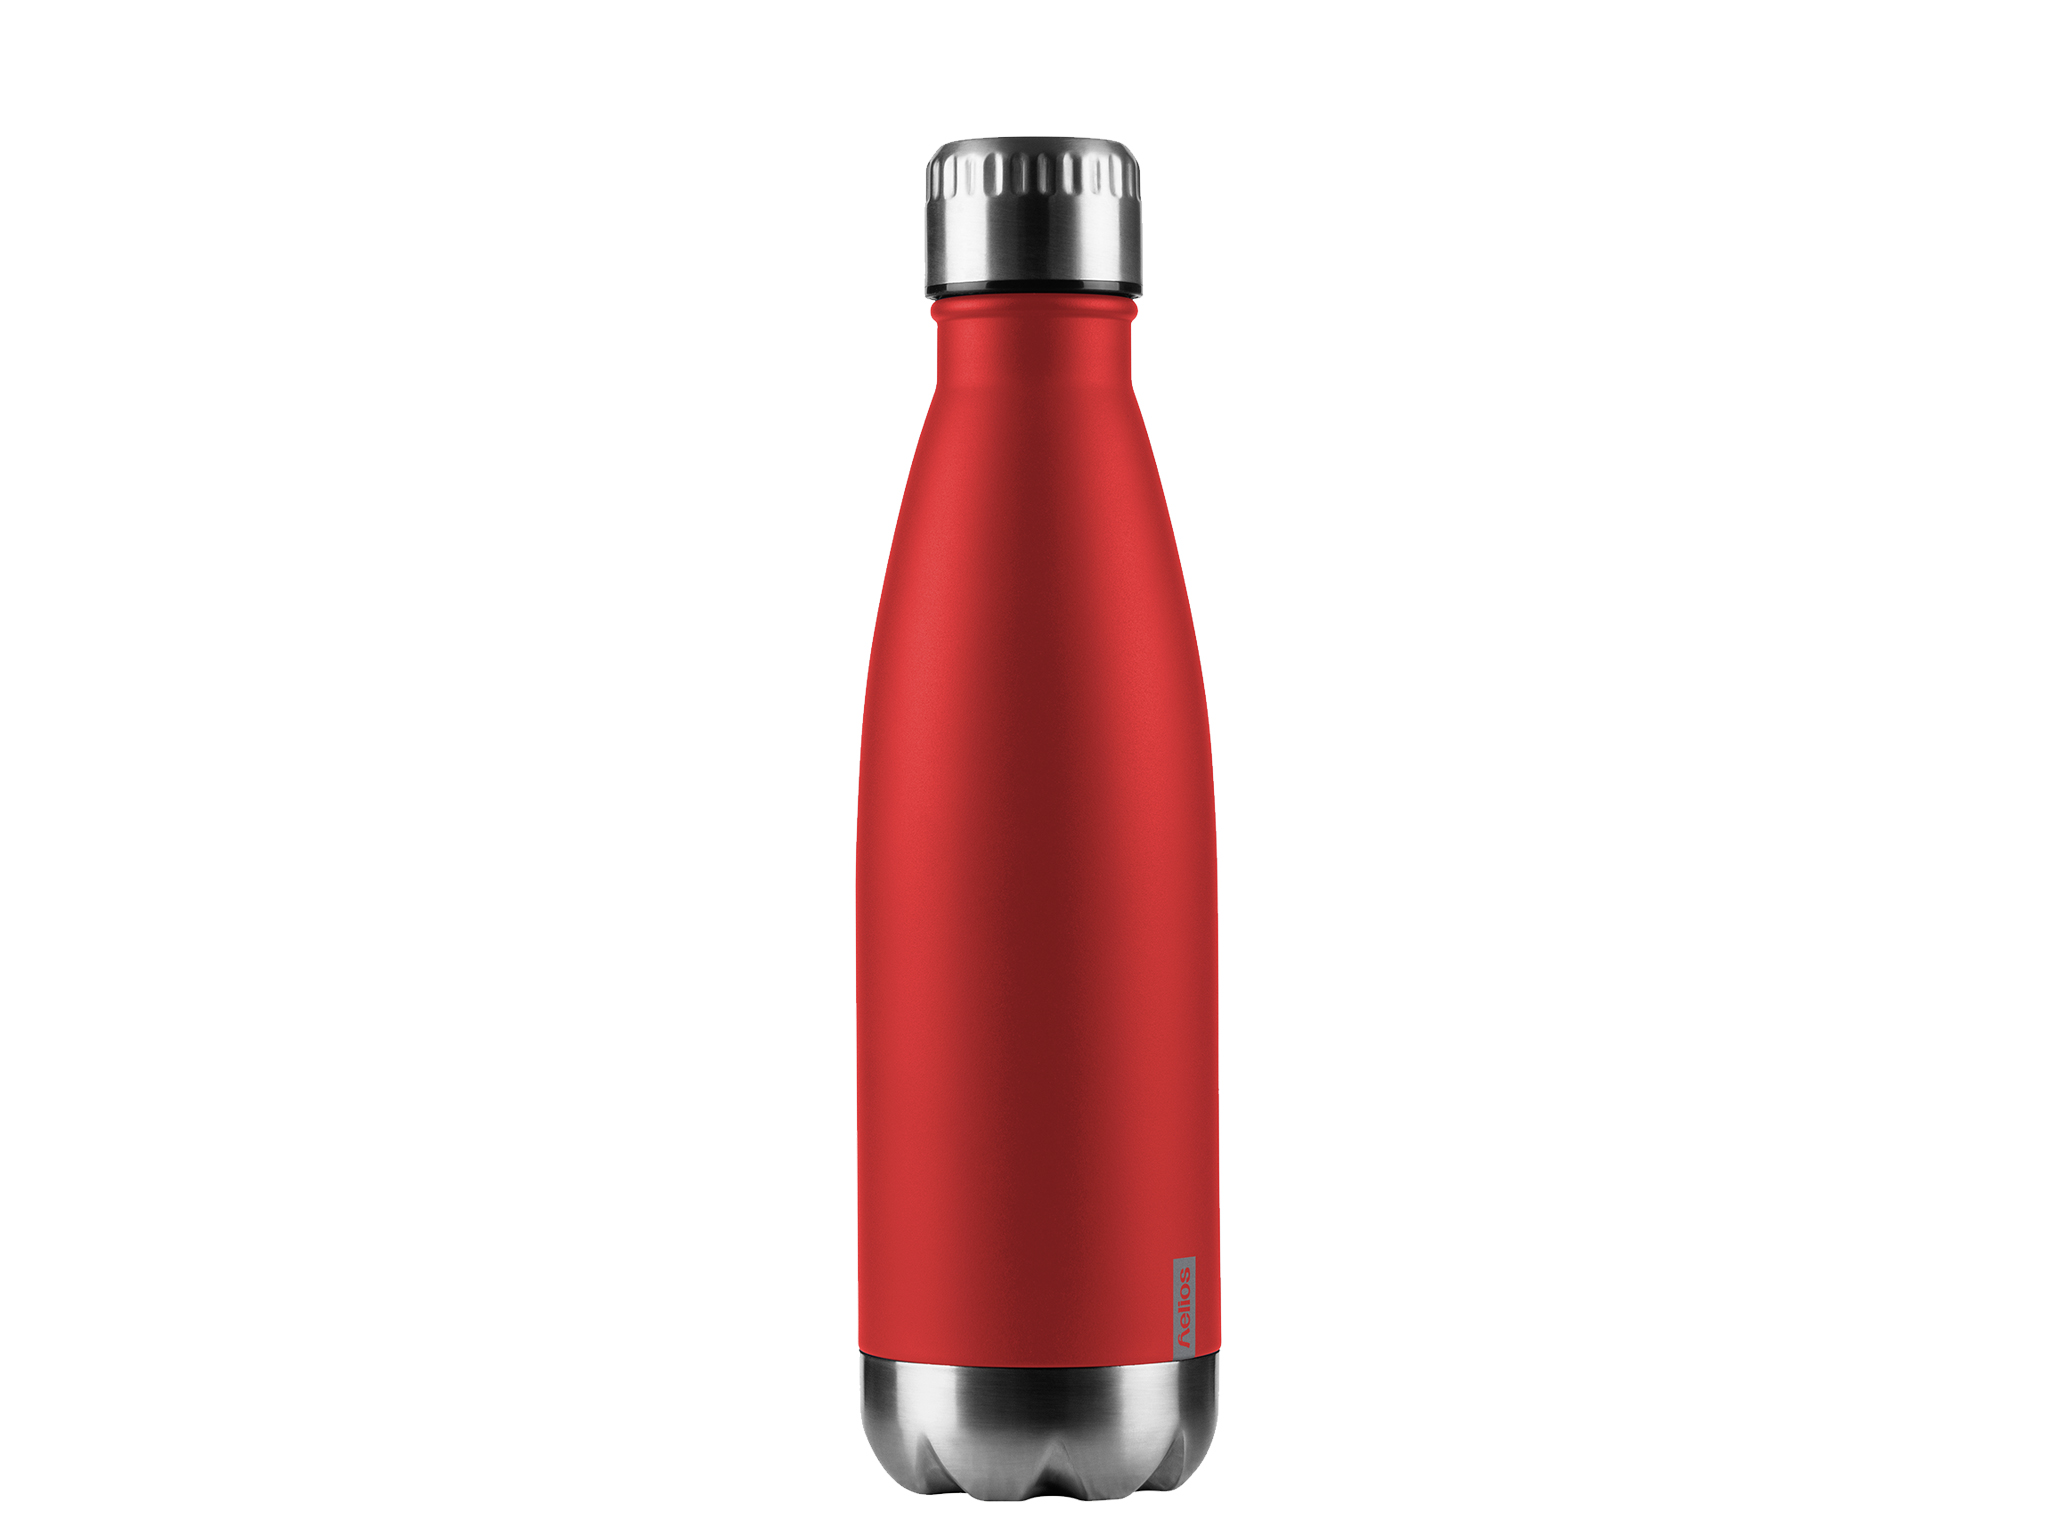 1502-130 - Isoleerfles rood 0.5 L ENJOY - Helios